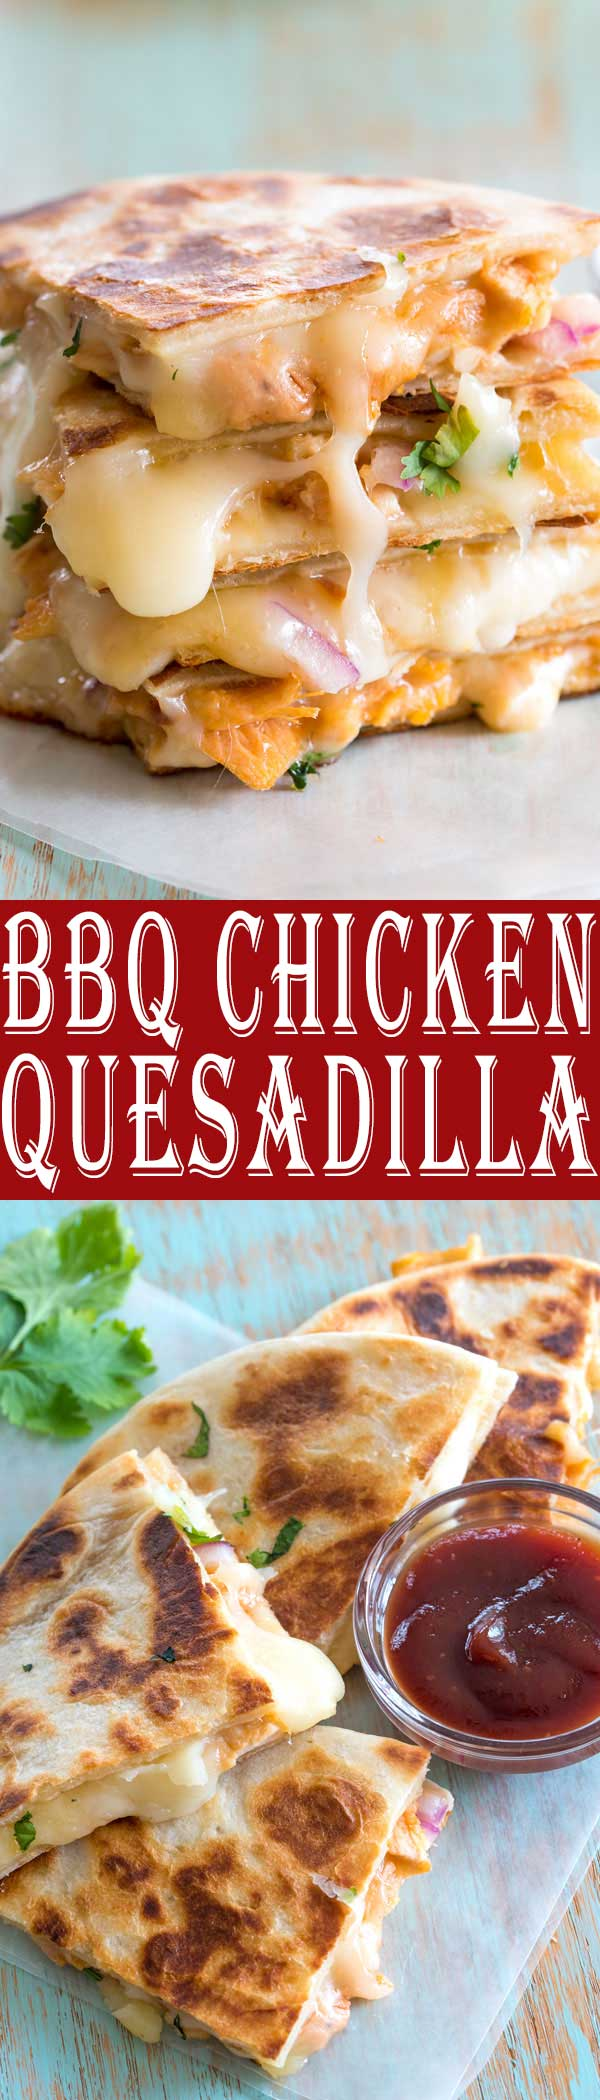 This tasty BBQ Chicken Quesadilla is based off my favorite barbecue chicken pizza! So simple and easy to make a quesadilla instead! #dinner #dinnerrecipes #appetizer #recipe